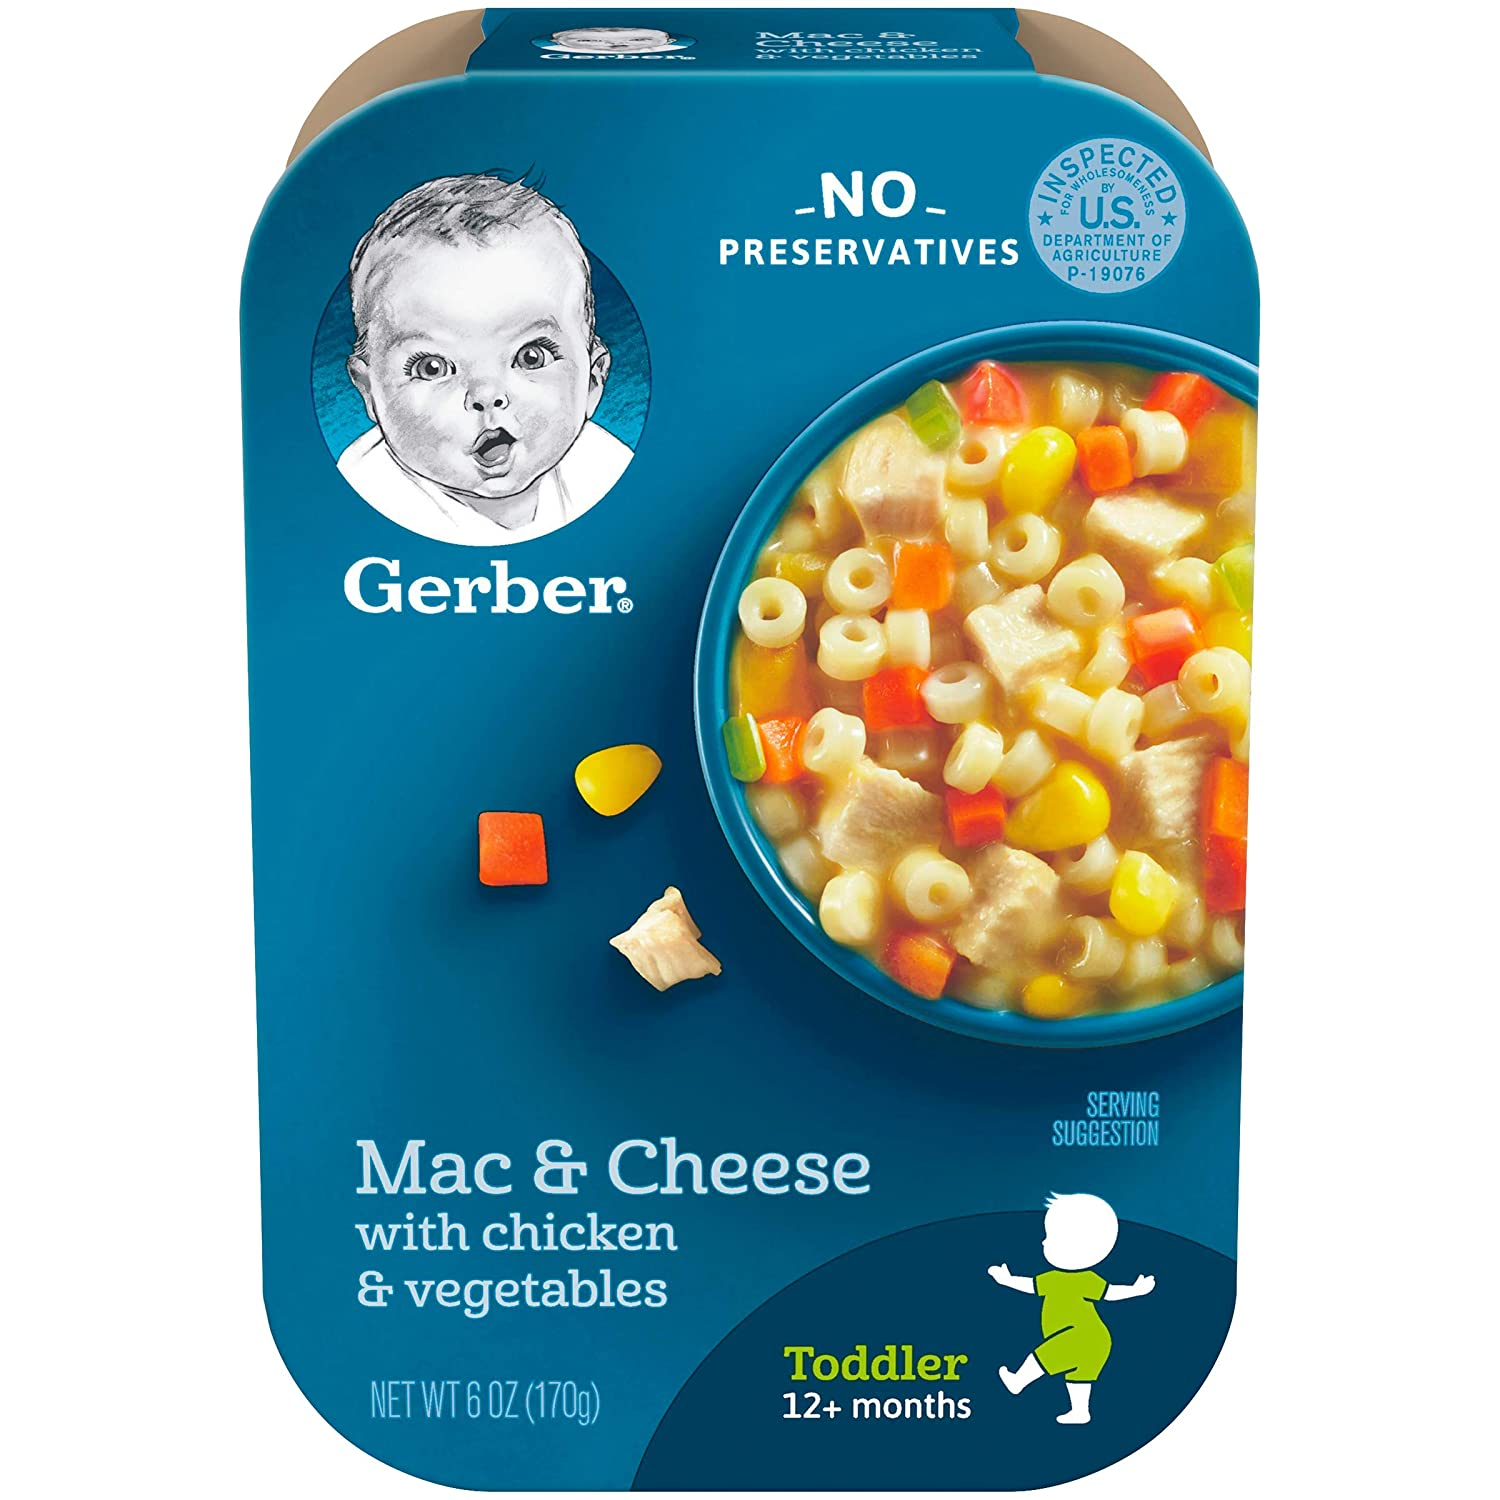 B00BPETQXM Gerber Mac & Cheese with Chicken & Vegetables, 6 Ounce (Pack of 6) 81yt9-koSGL